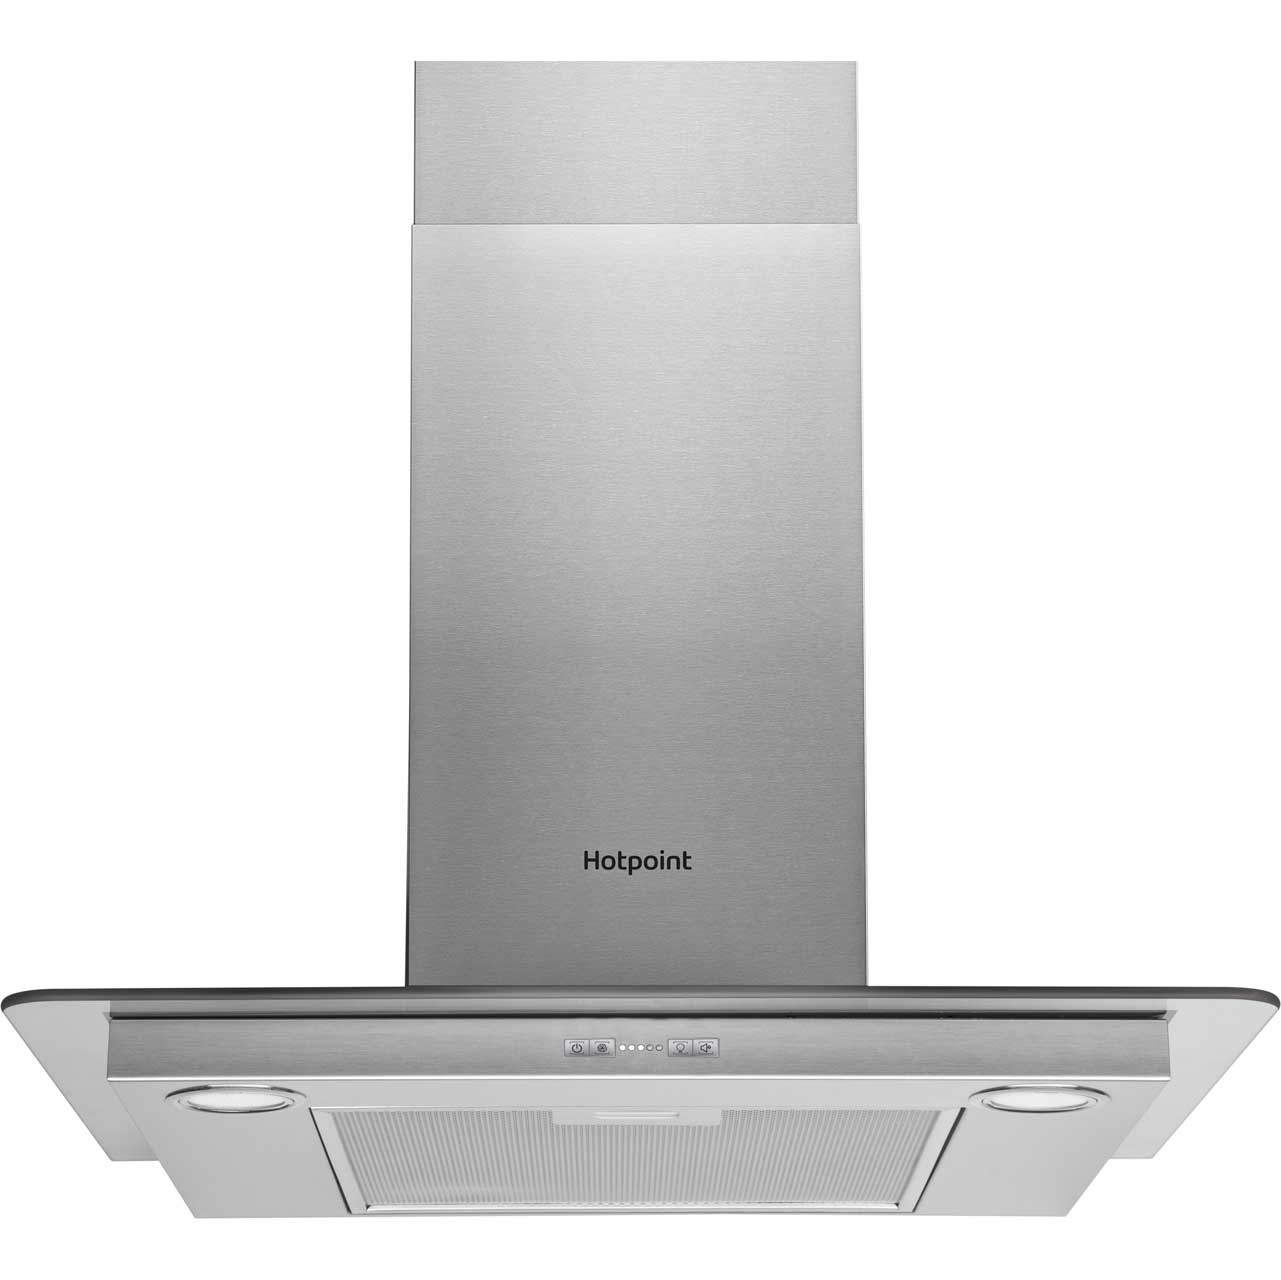 Hotpoint PHFG65FABX Integrated Cooker Hood in Stainless Steel